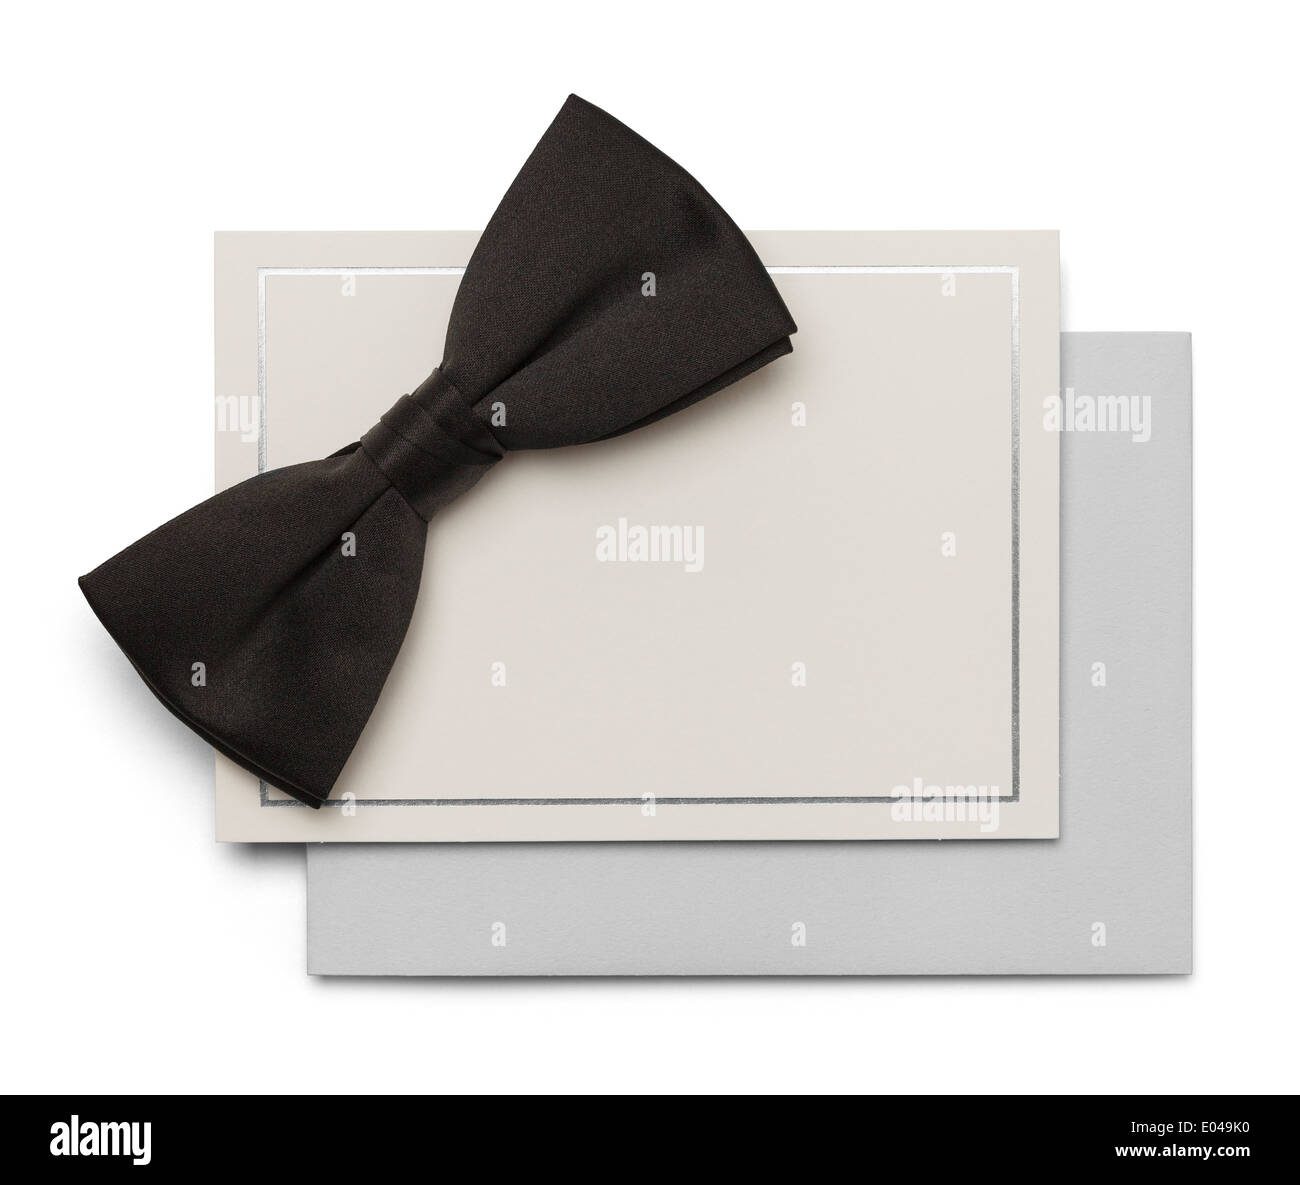 Black Bow Tie with Card and Envelope isolated on White Background. - Stock Image